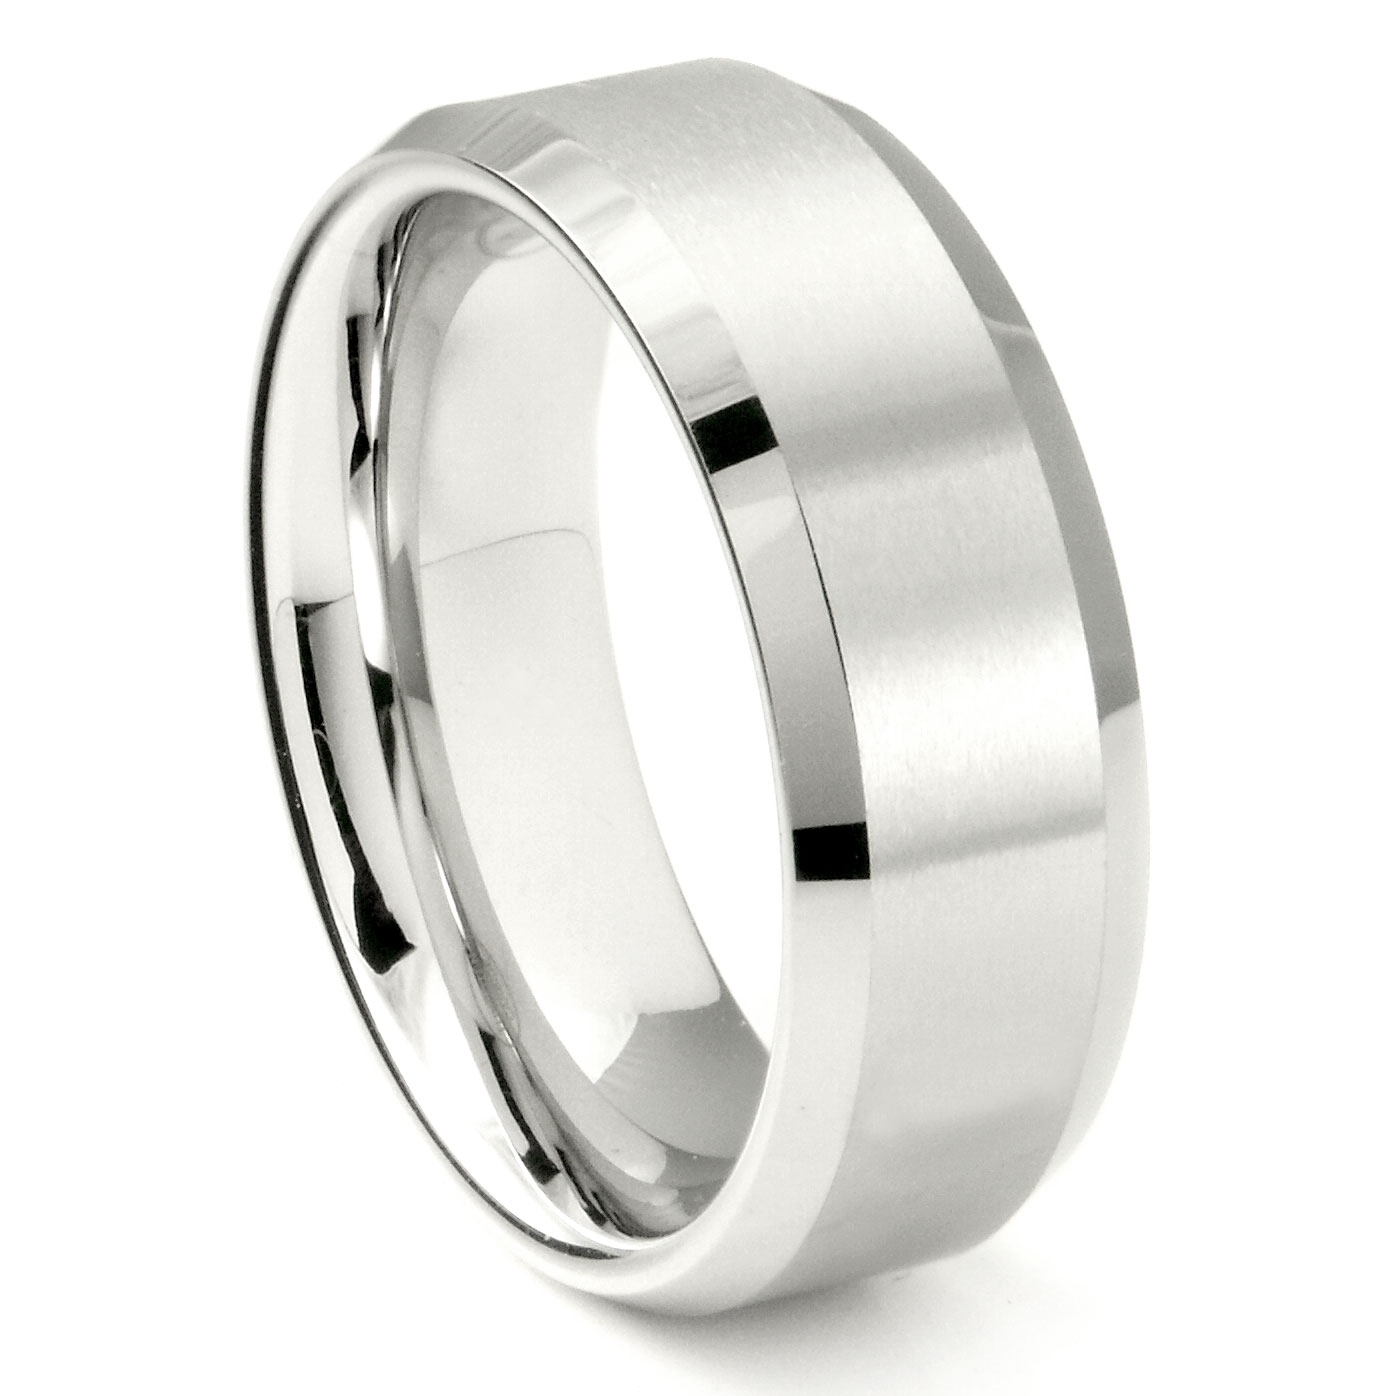 White Tungsten Carbide 8mm Beveled Wedding Band Ring Within Most Current Tungsten Wedding Bands (View 5 of 15)